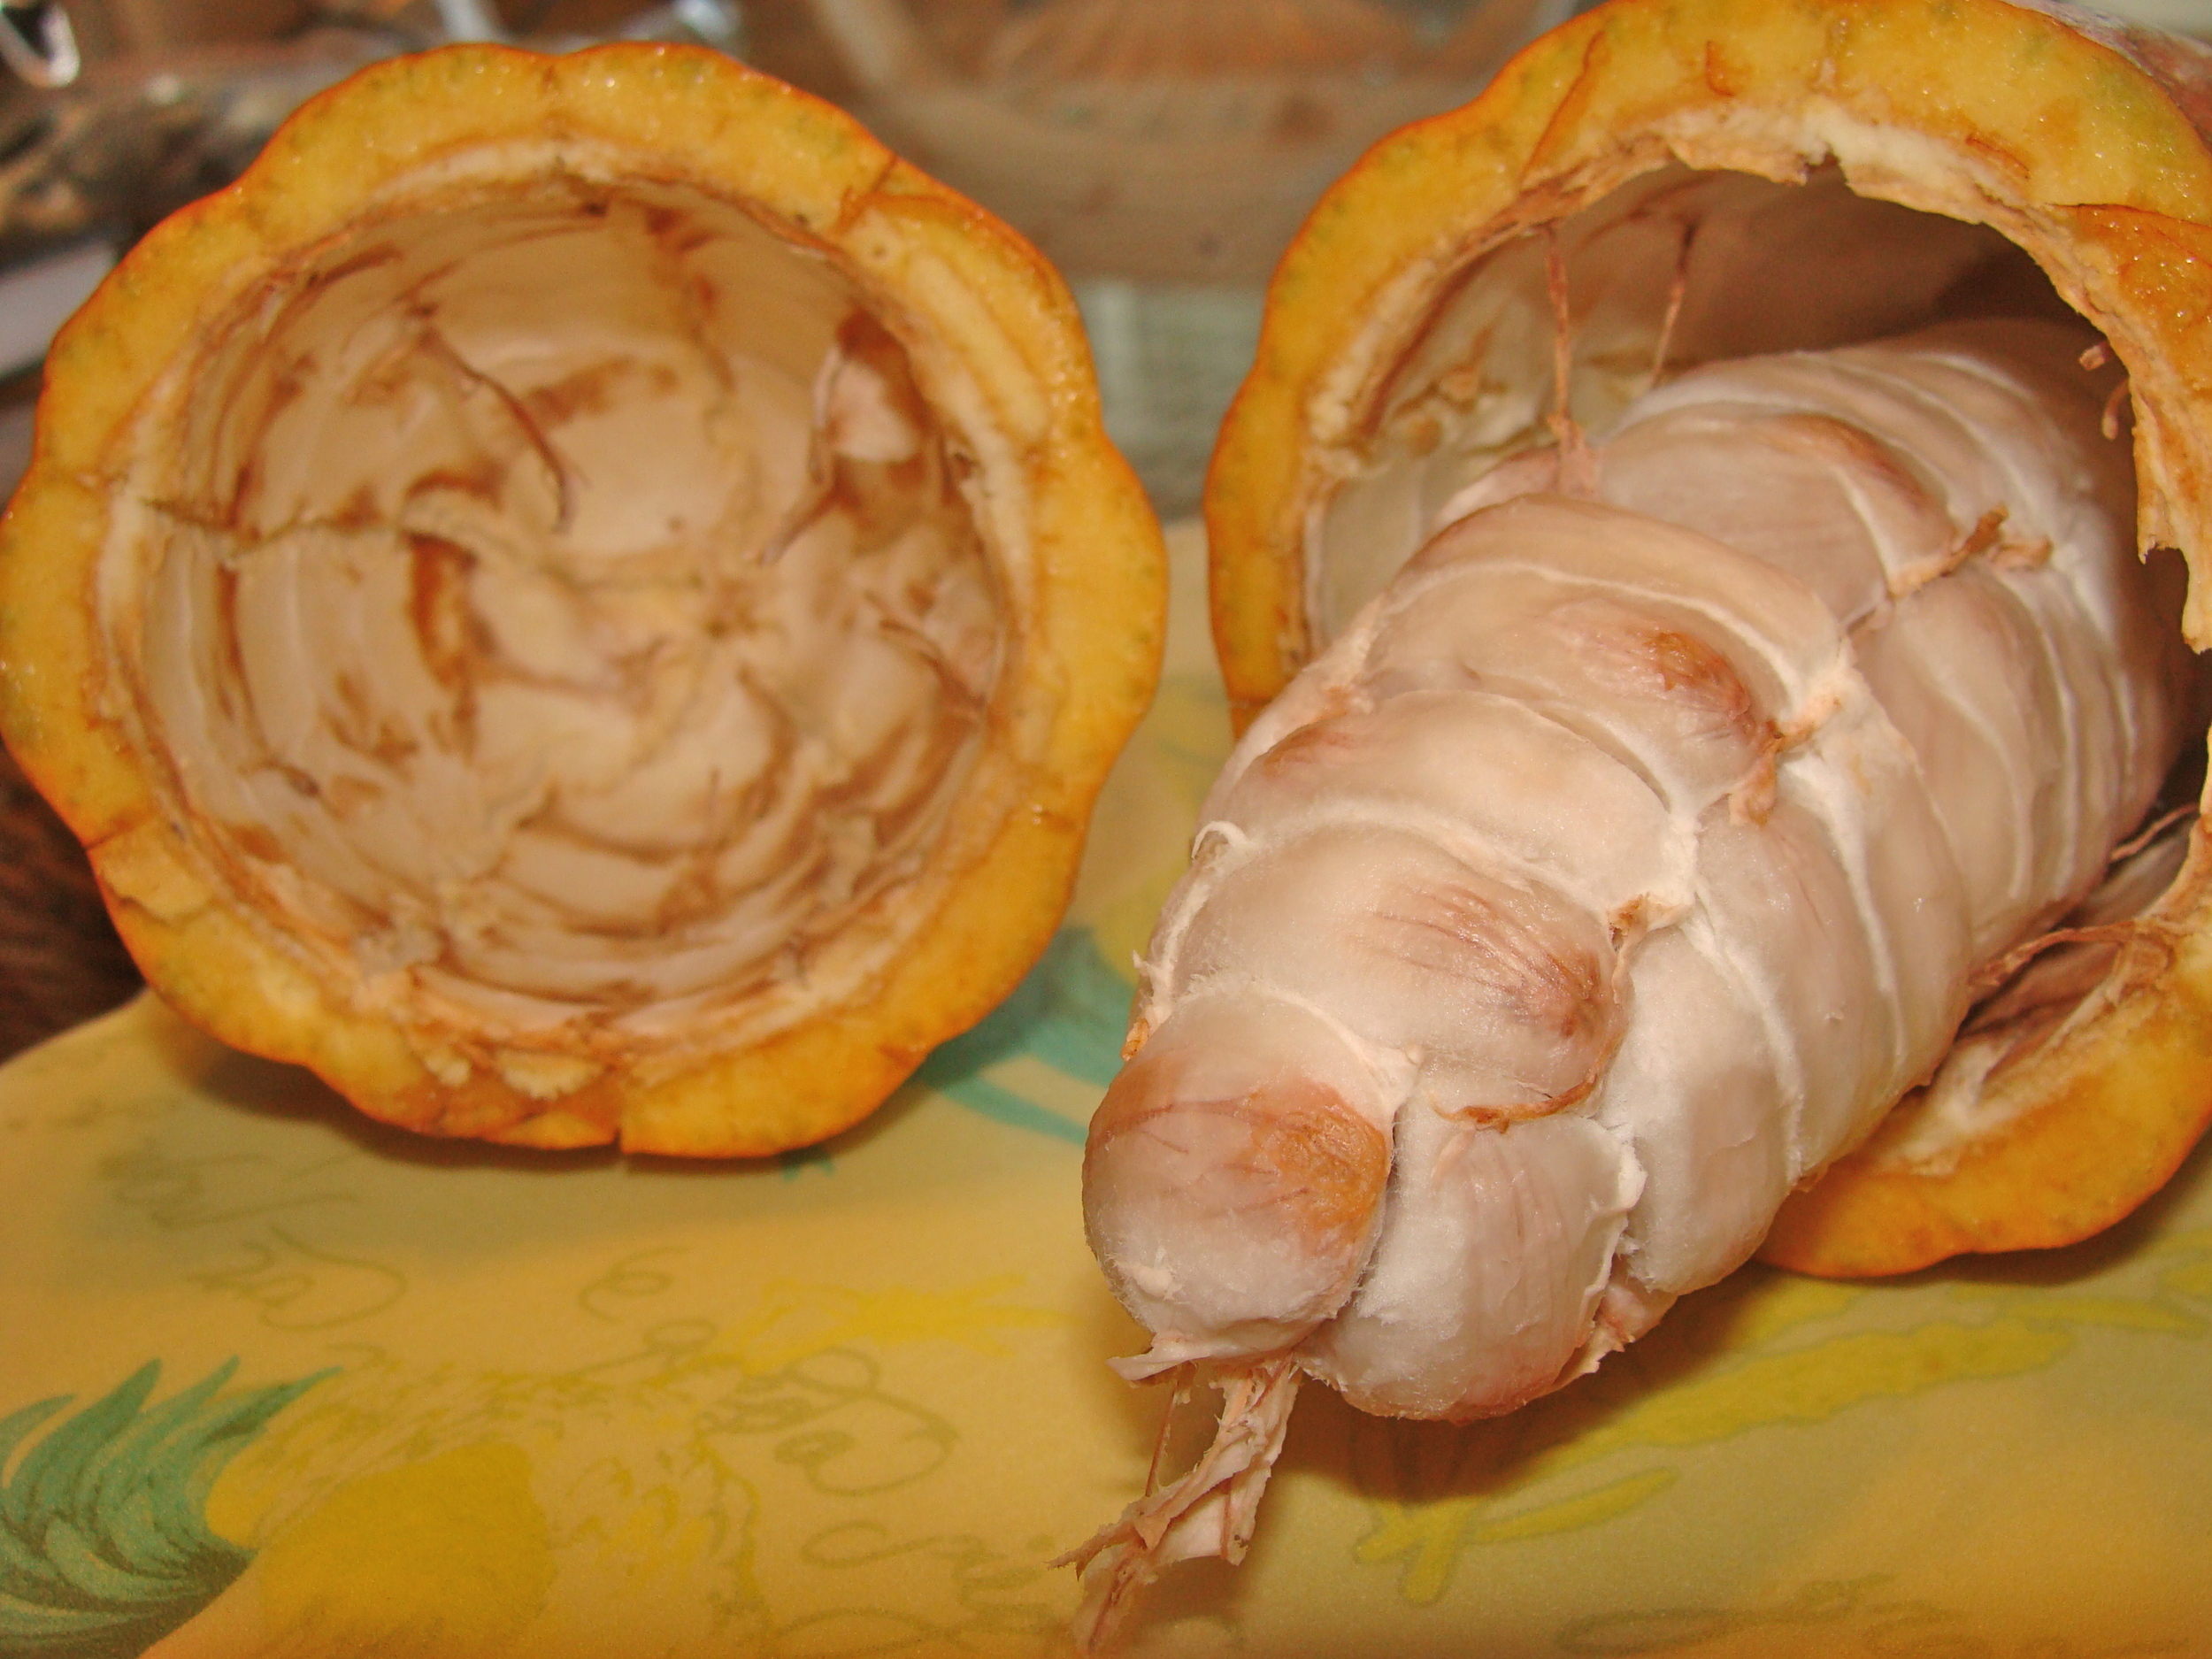 The Dissected Cocoa Pod